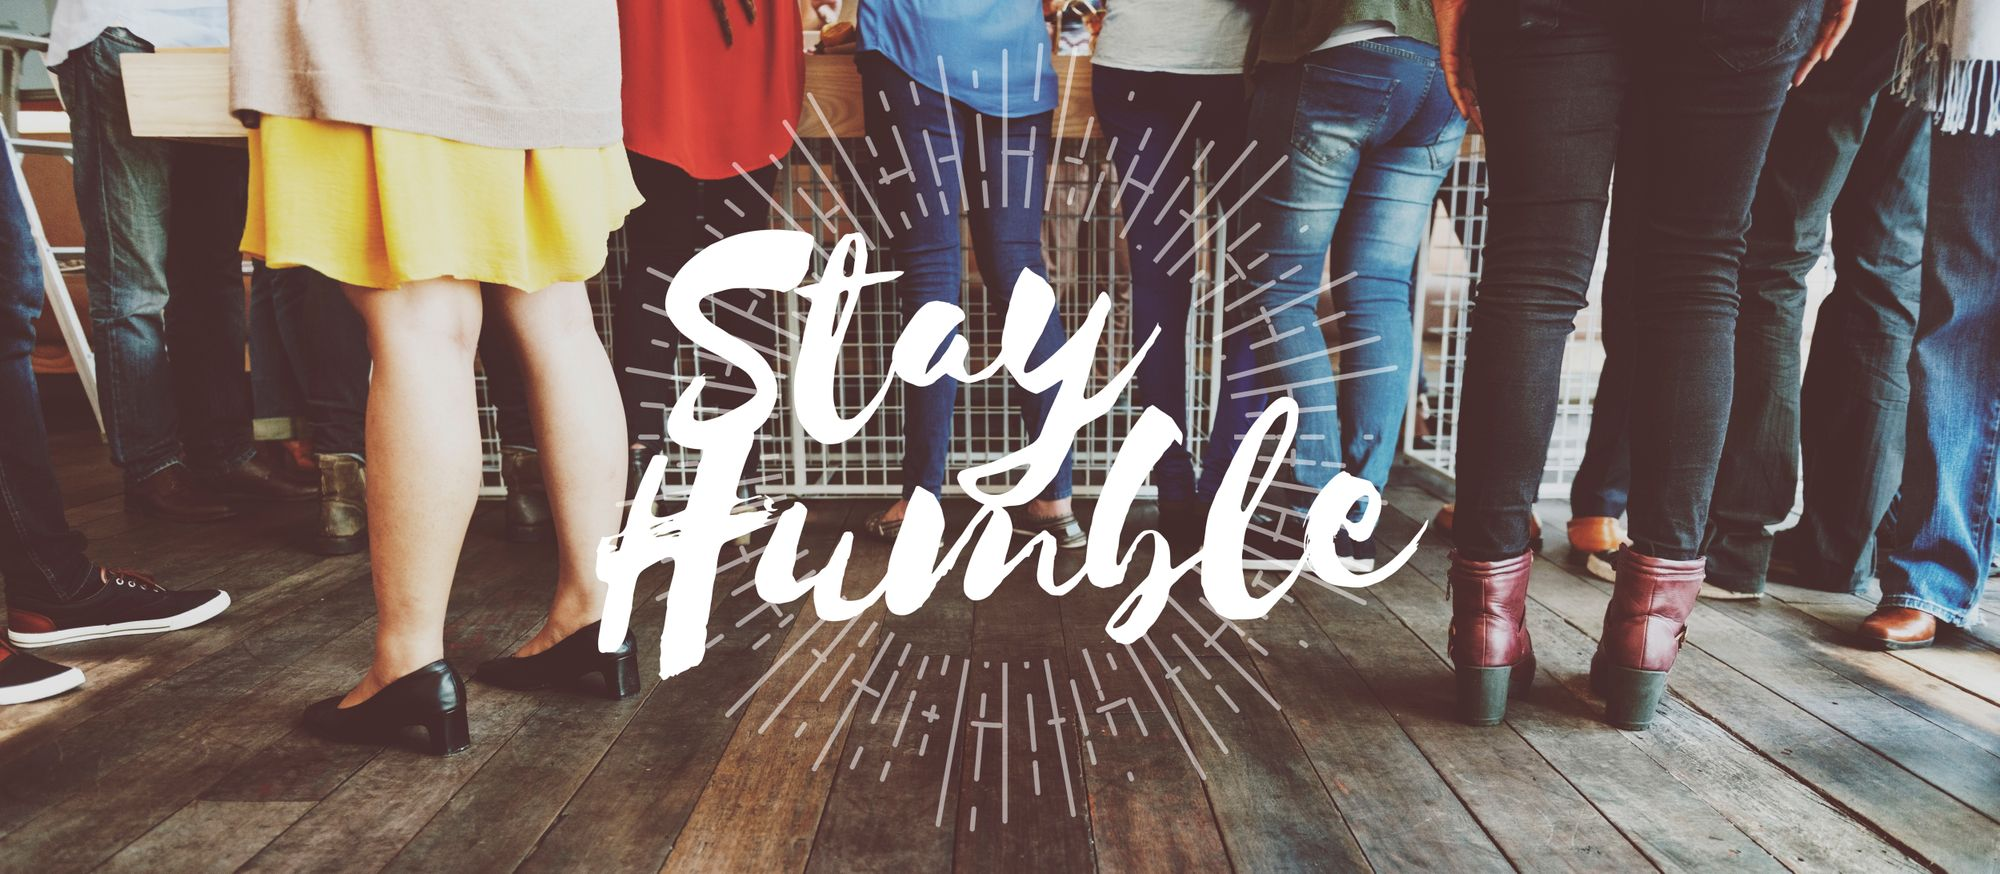 3 Ways Your Business Can Embrace Humility